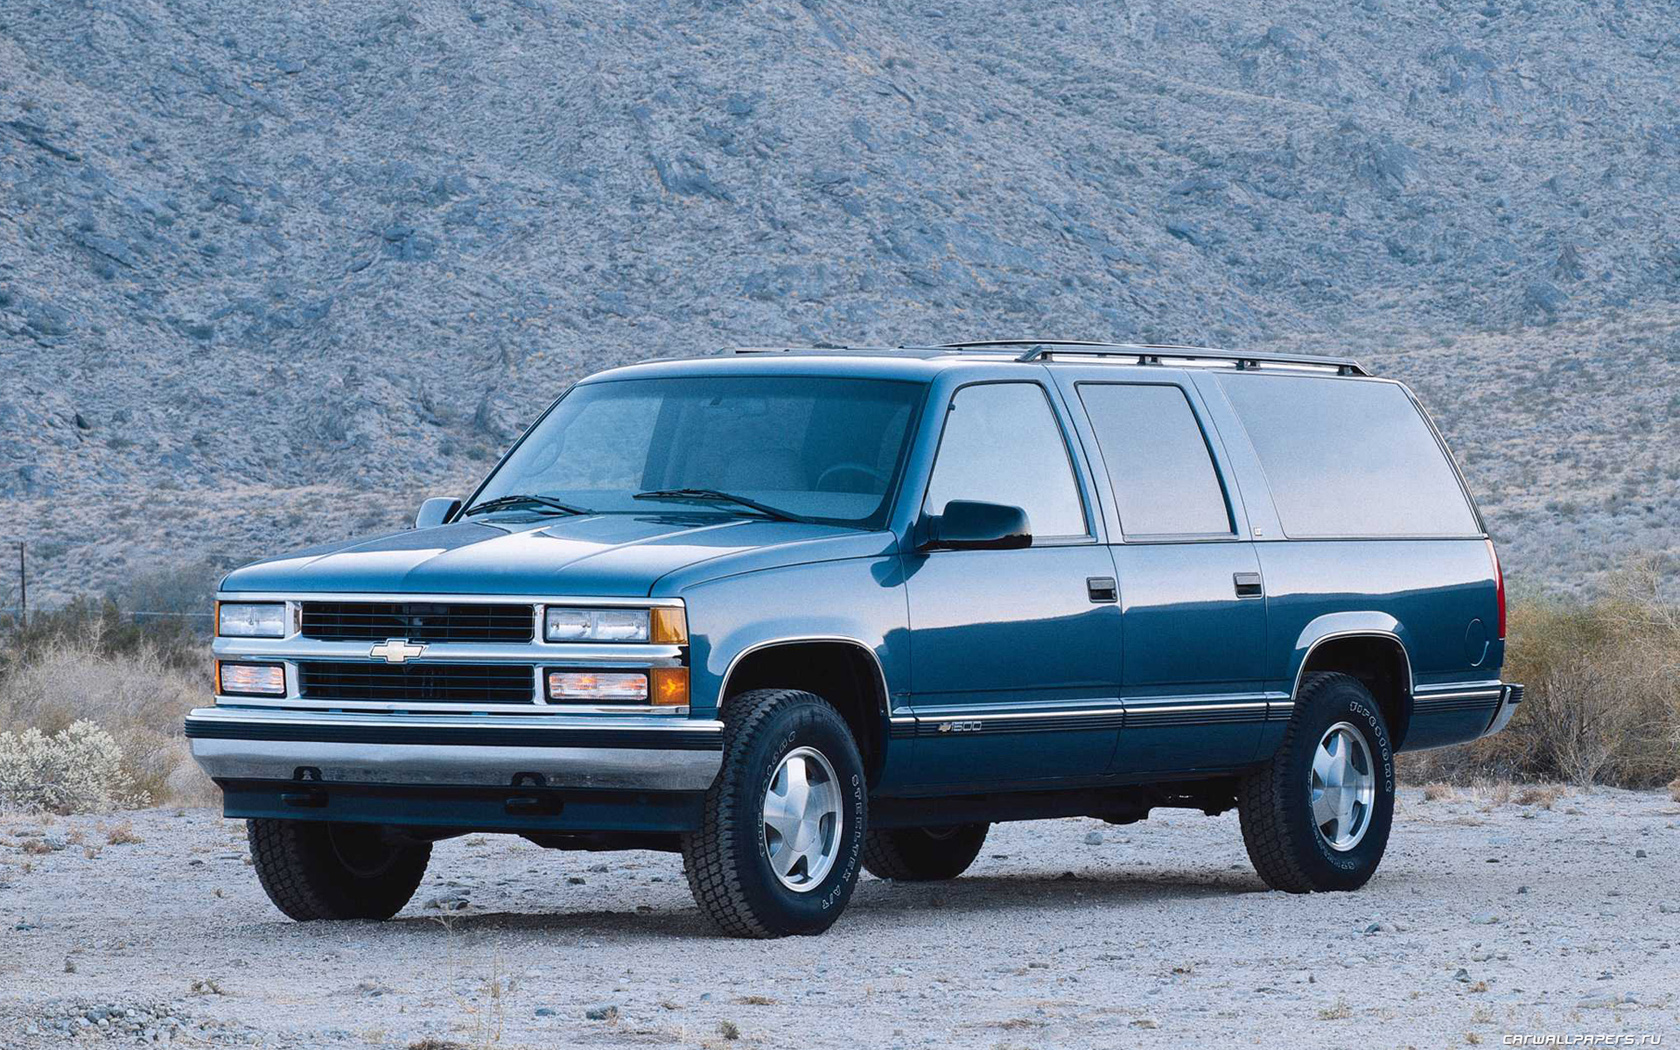 Suburban 98 chevy suburban : Suburban » 1998 Chevy Suburban - Old Chevy Photos Collection, All ...